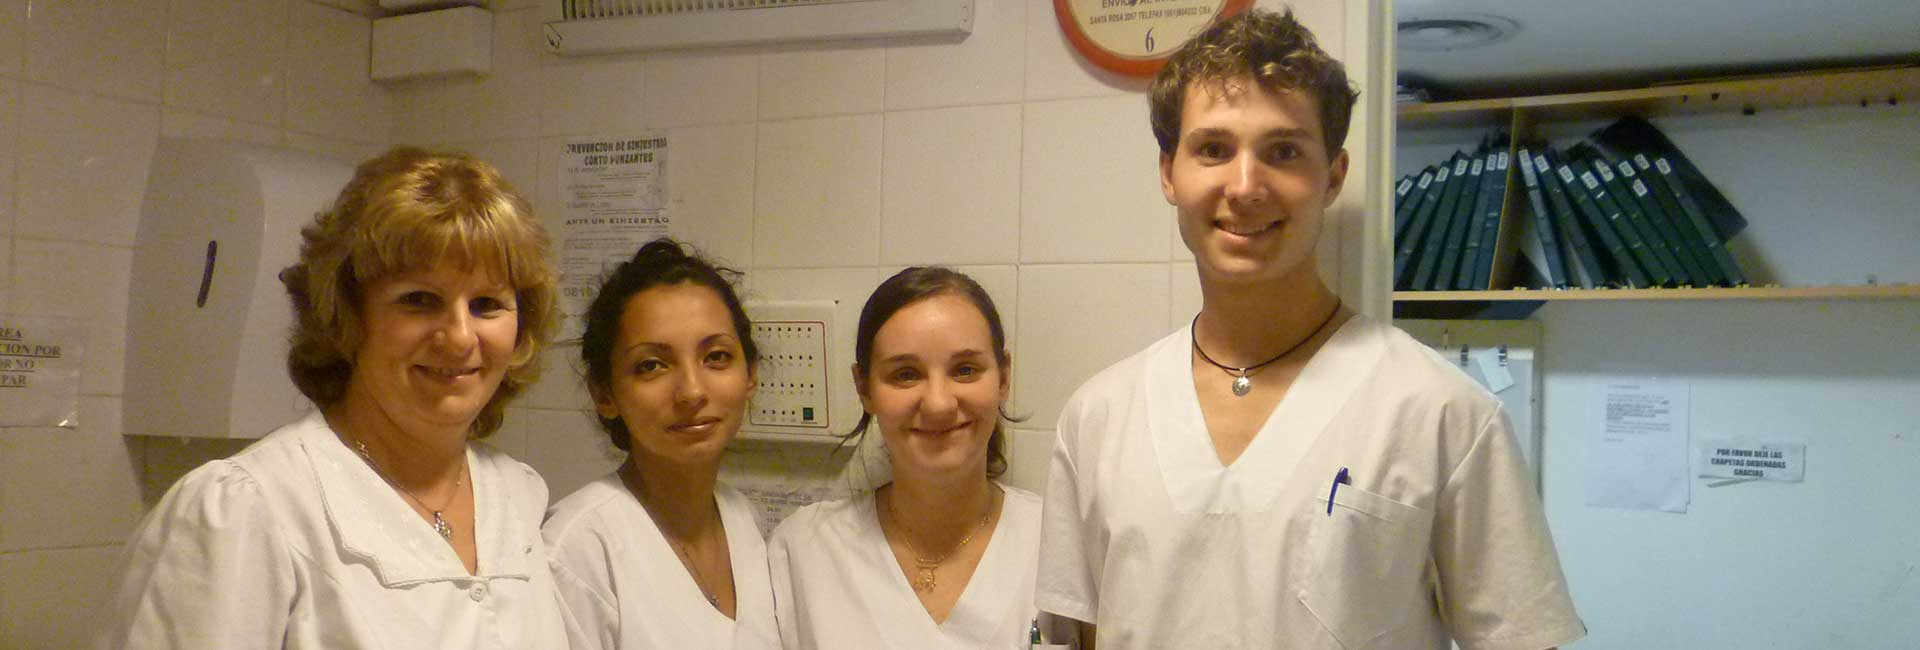 Nursing internship in Argentina